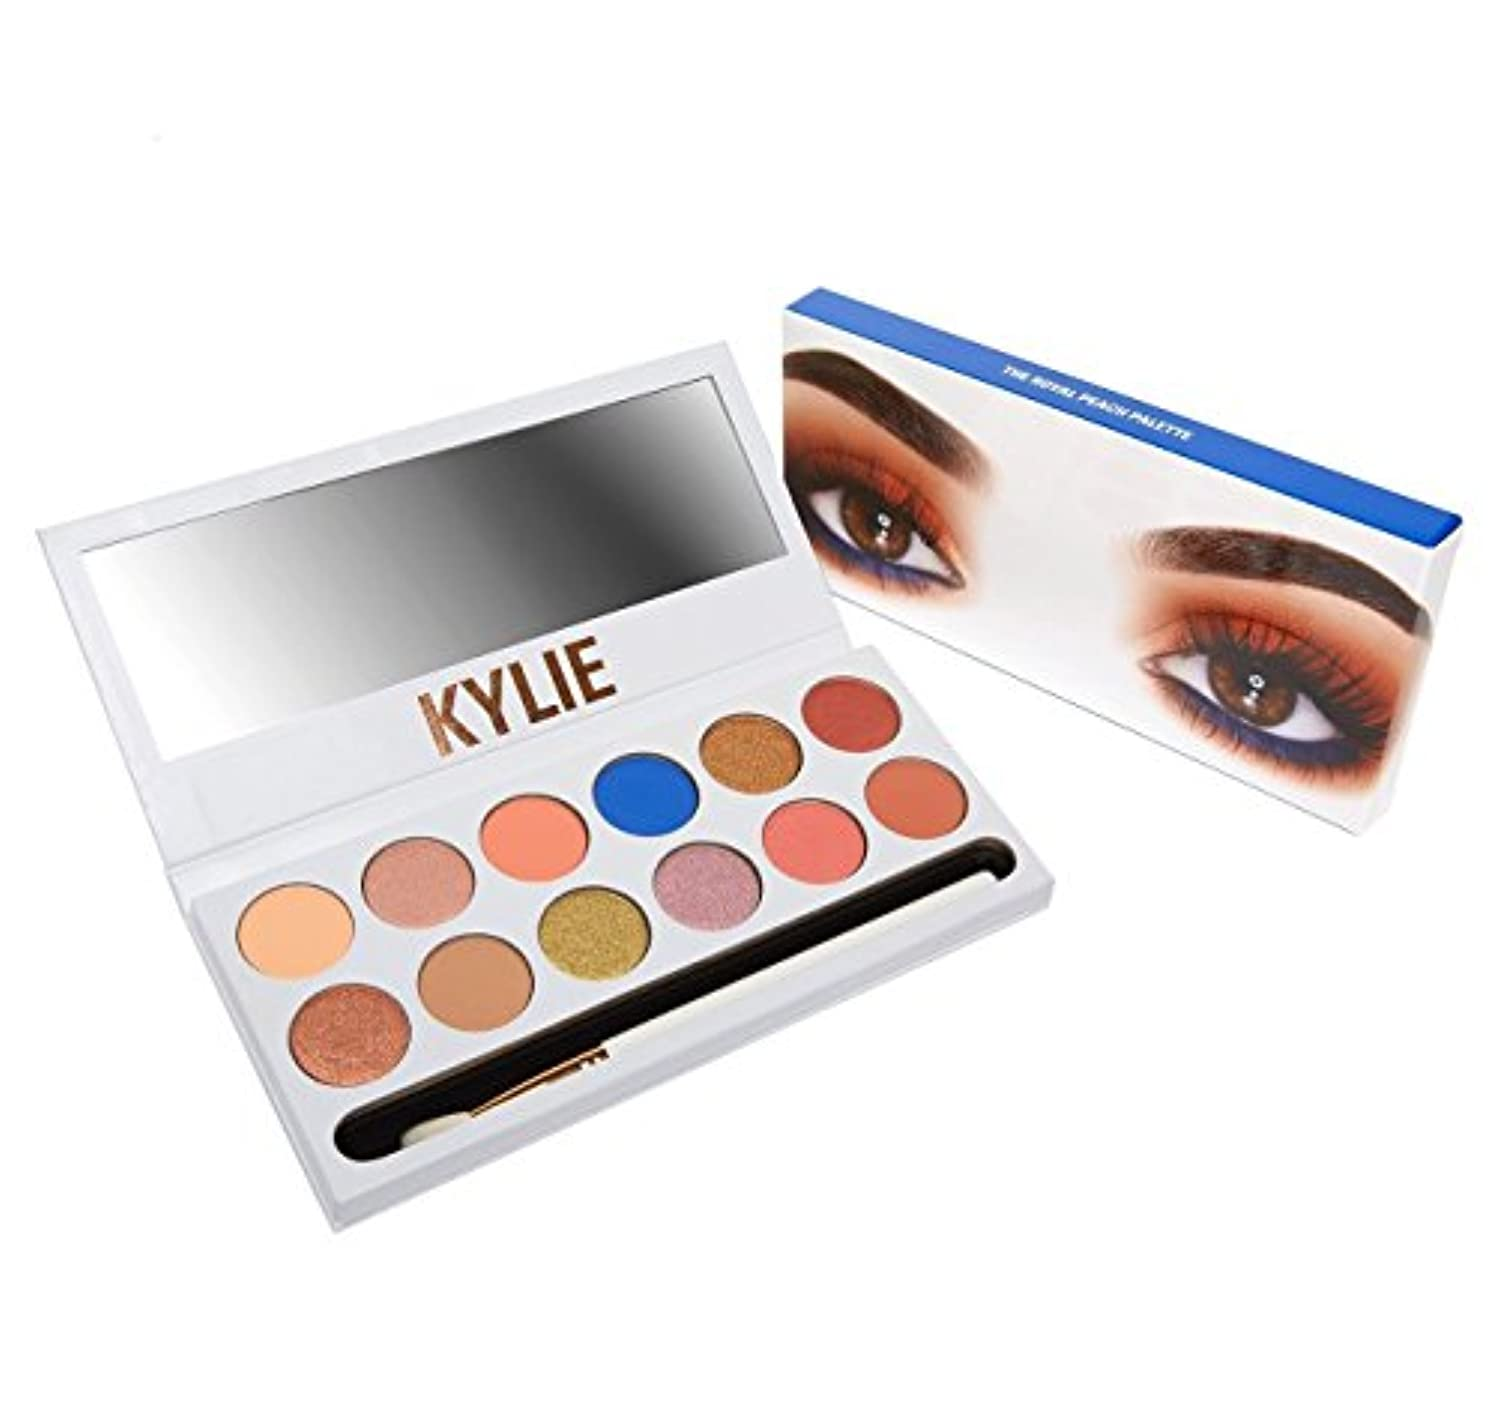 Kylie Cosmetics(カイリーコスメティック)THE ROYAL PEACH PALETTE